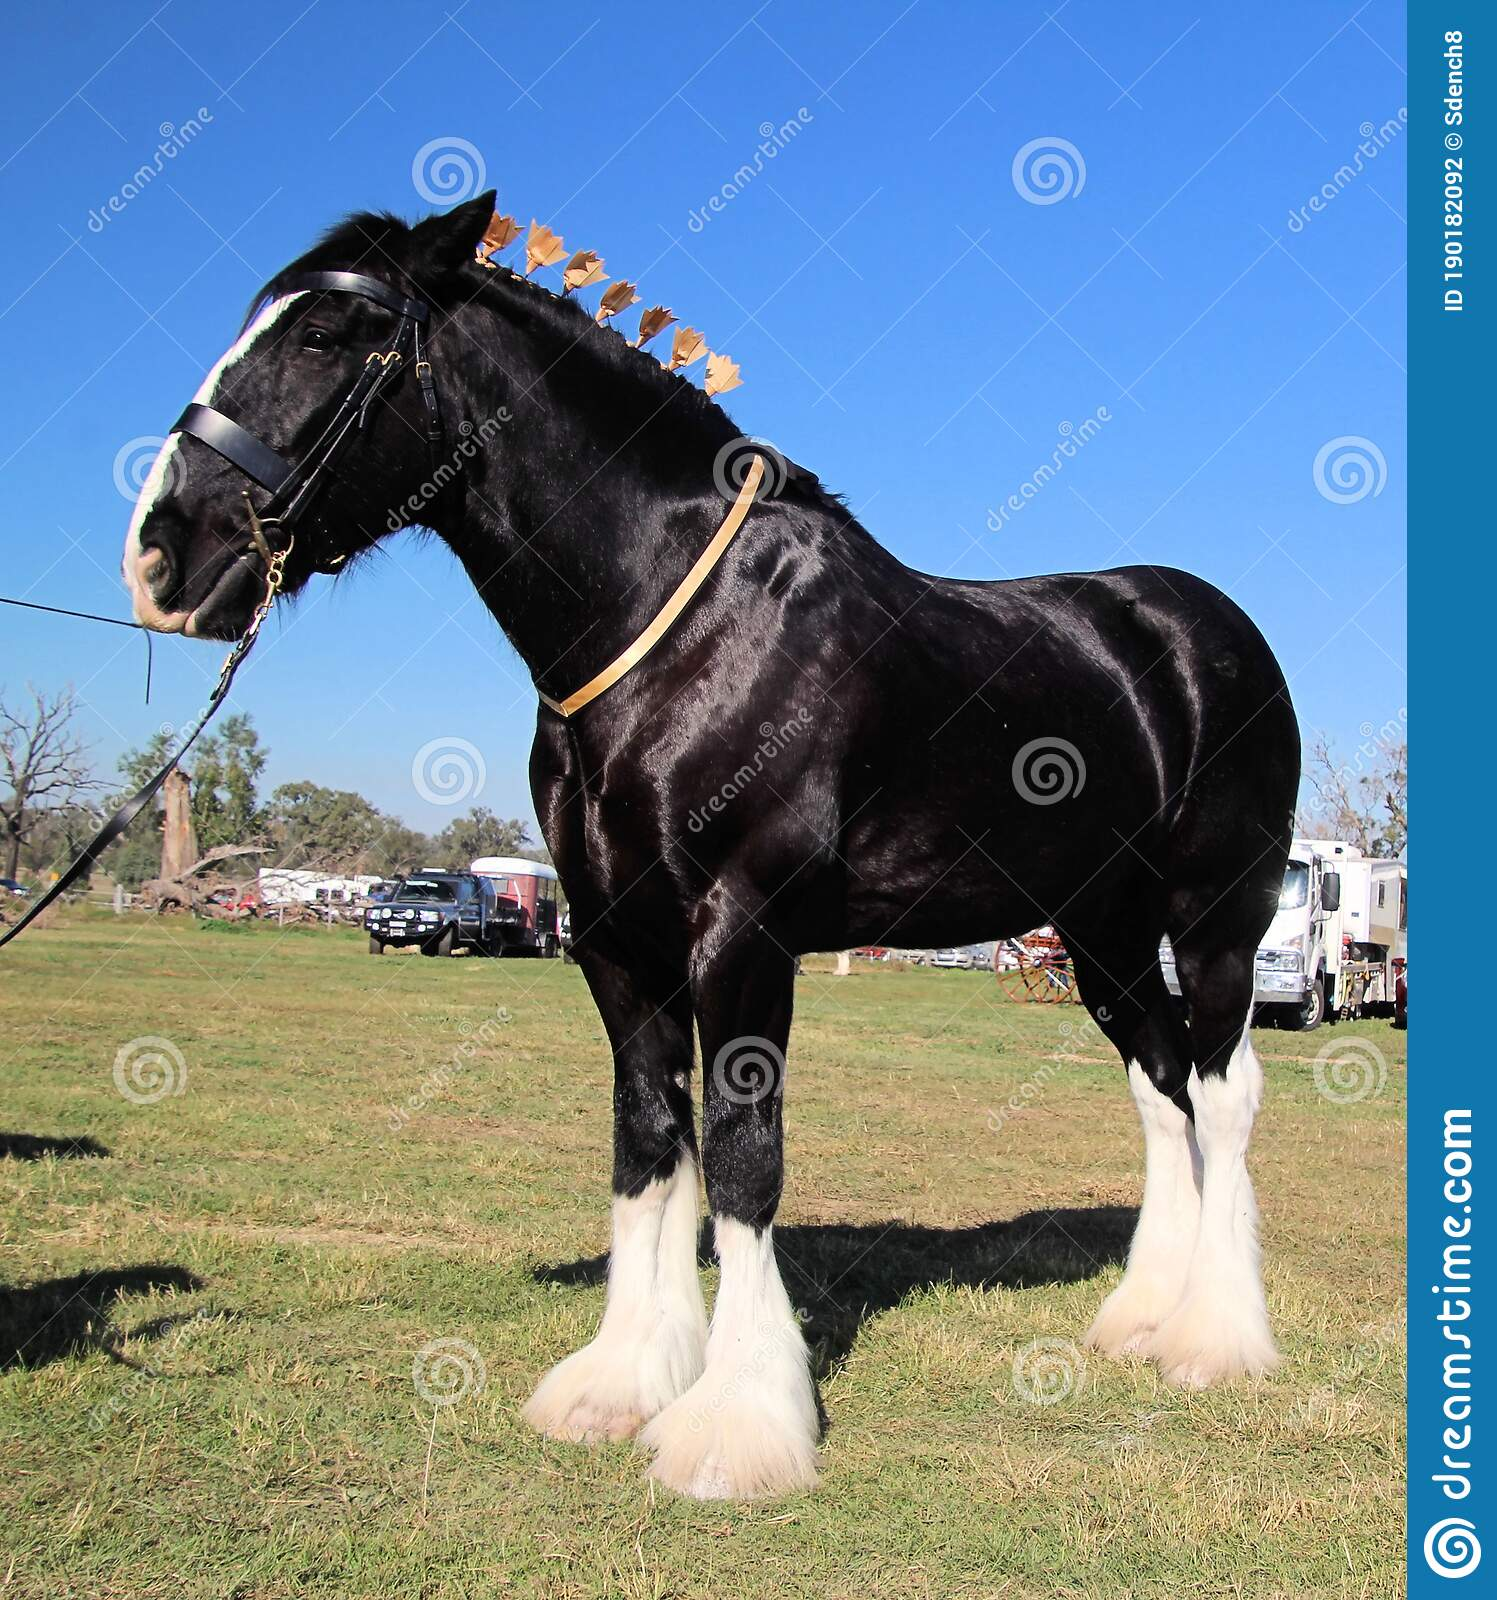 205 White Clydesdale Horse Photos Free Royalty Free Stock Photos From Dreamstime